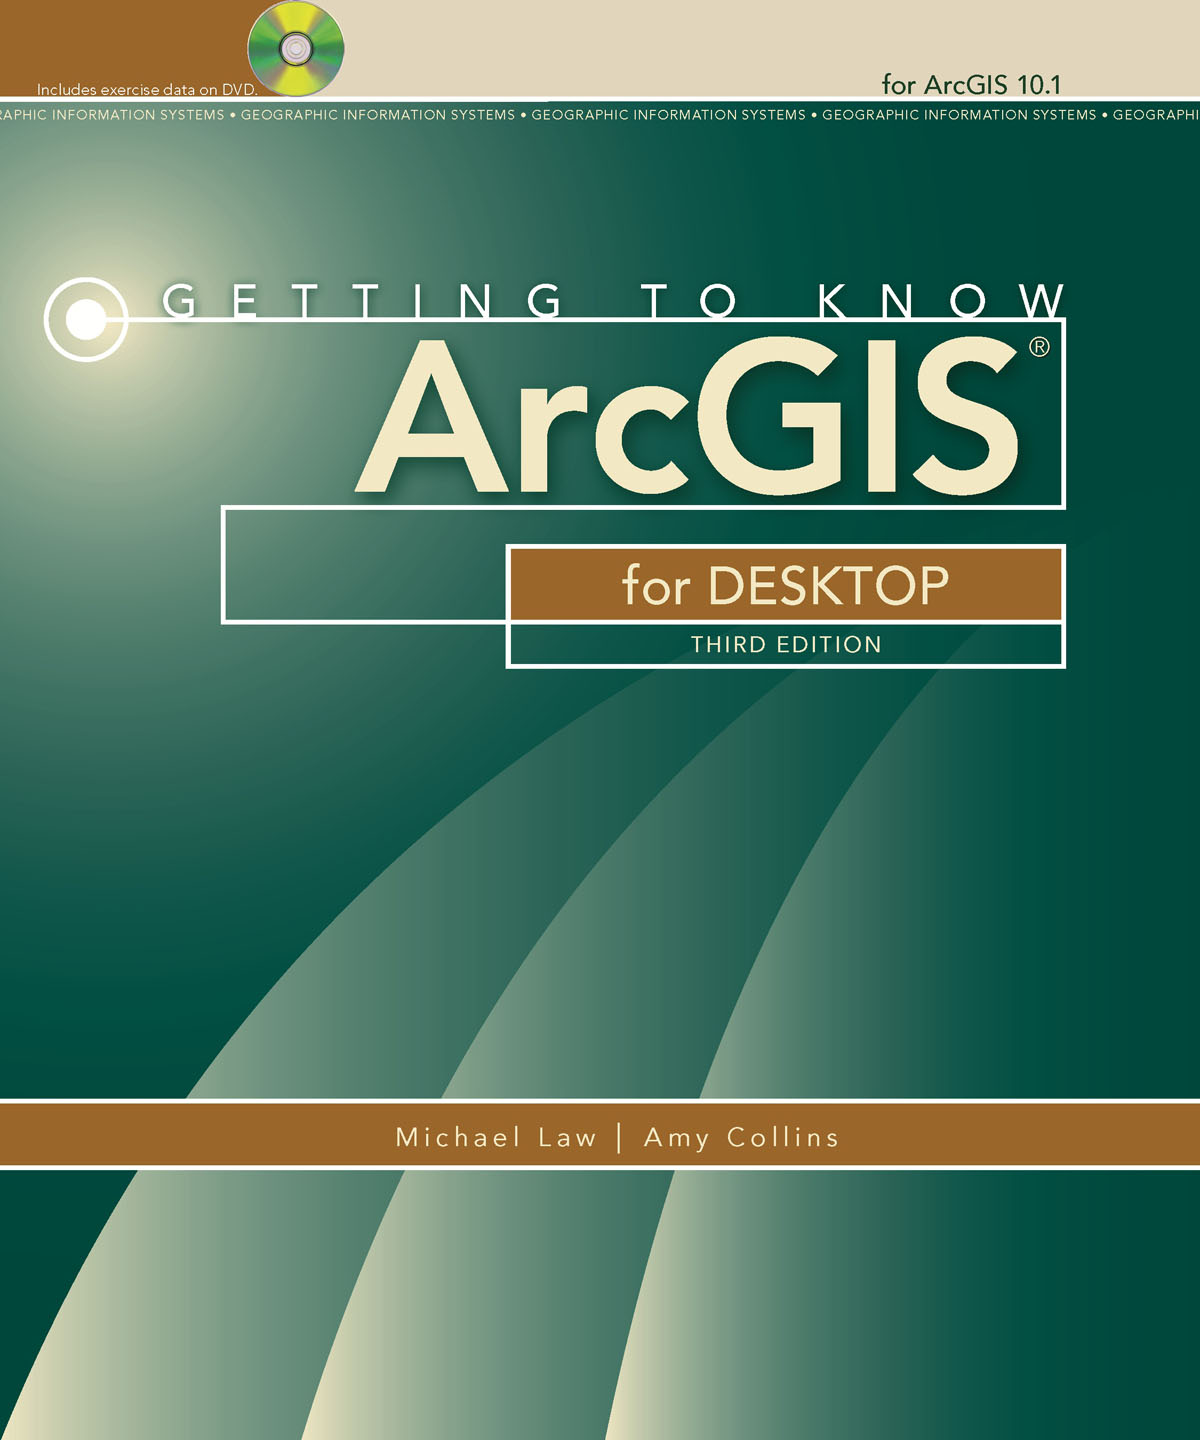 This best-selling workbook has been completely revised for ArcGIS 10.1